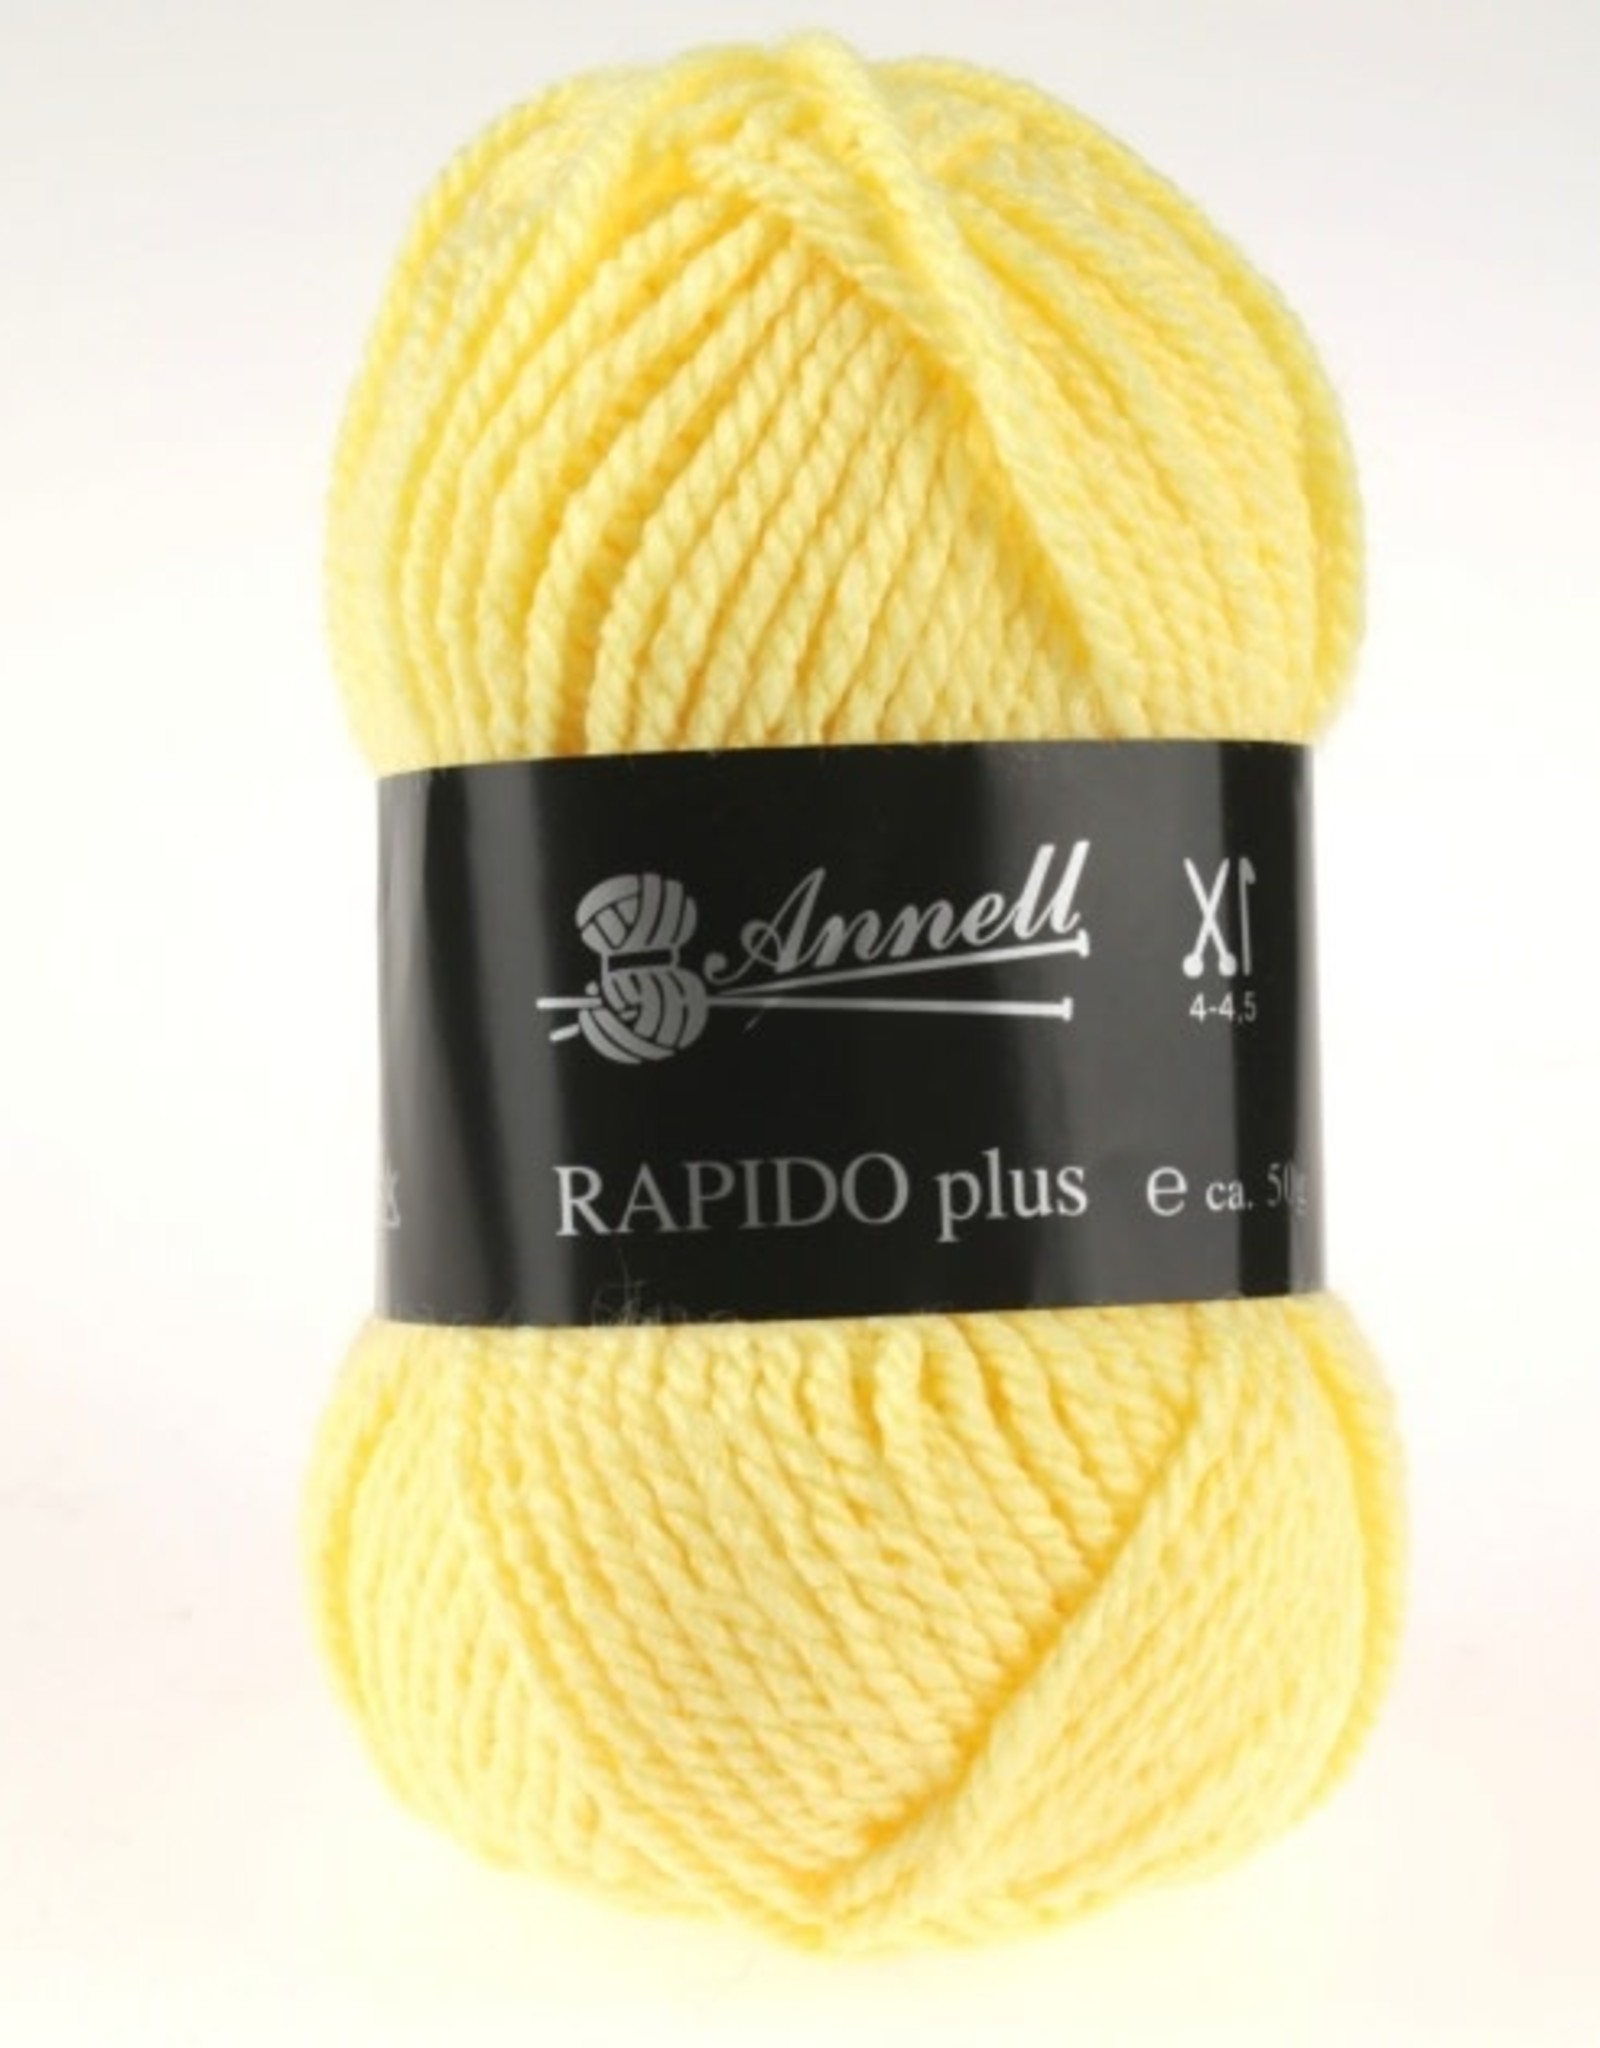 Annell Annell rapido plus 9214